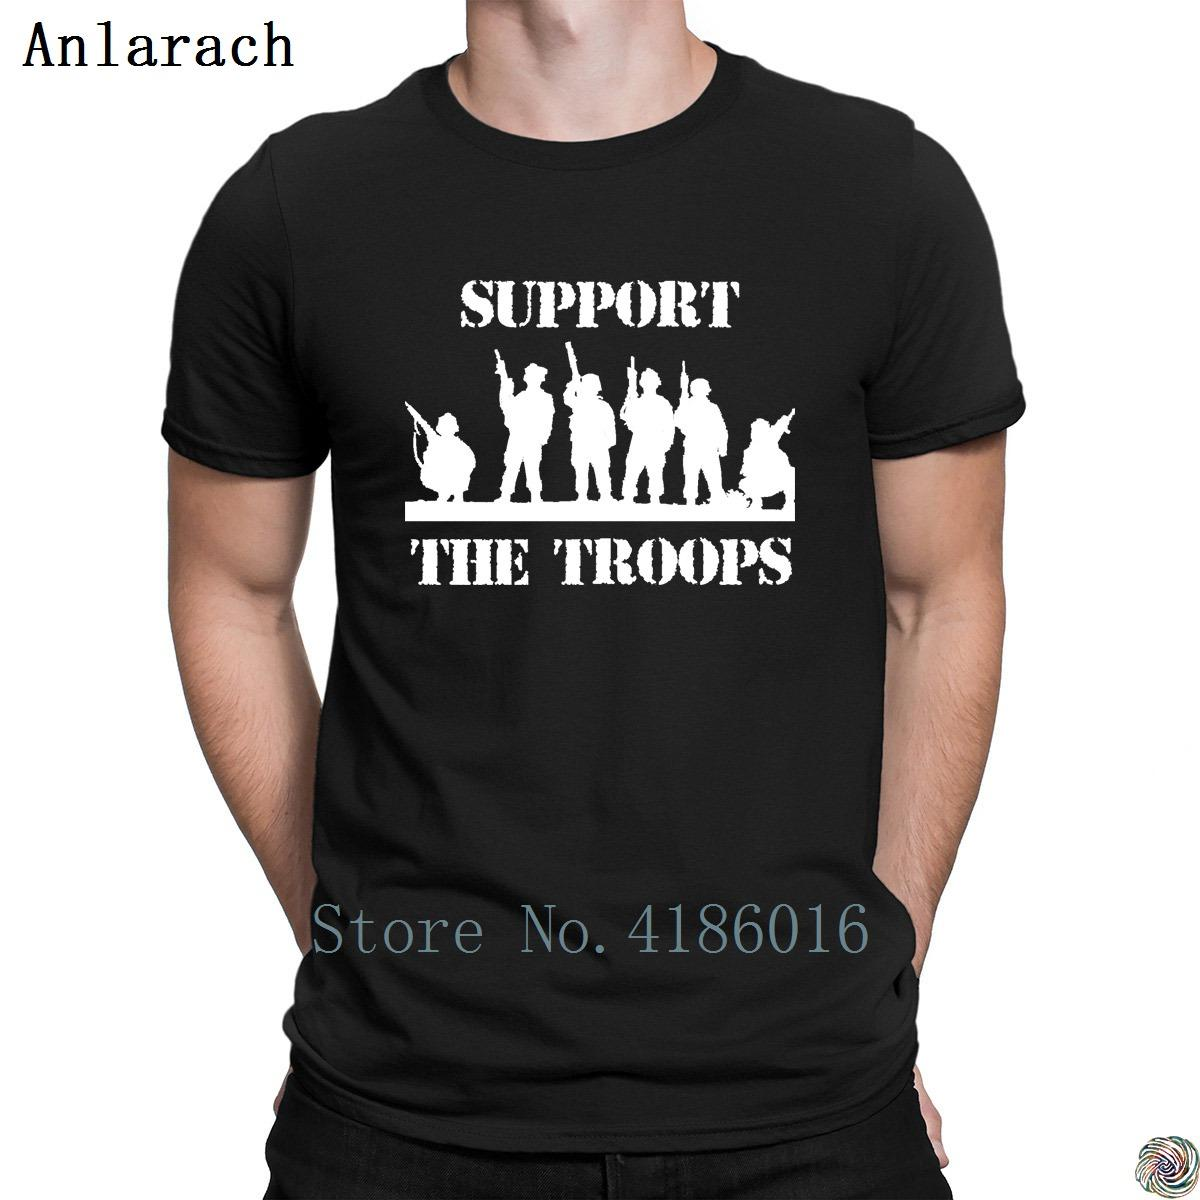 Support The Troops Veterans Day Tshirts Humor Solid Color Natural Size S  3xl T Shirt For Men Fun Sunlight Designing Tee Tops Cotton Shirts White T  Shirts ... 6b2d87668